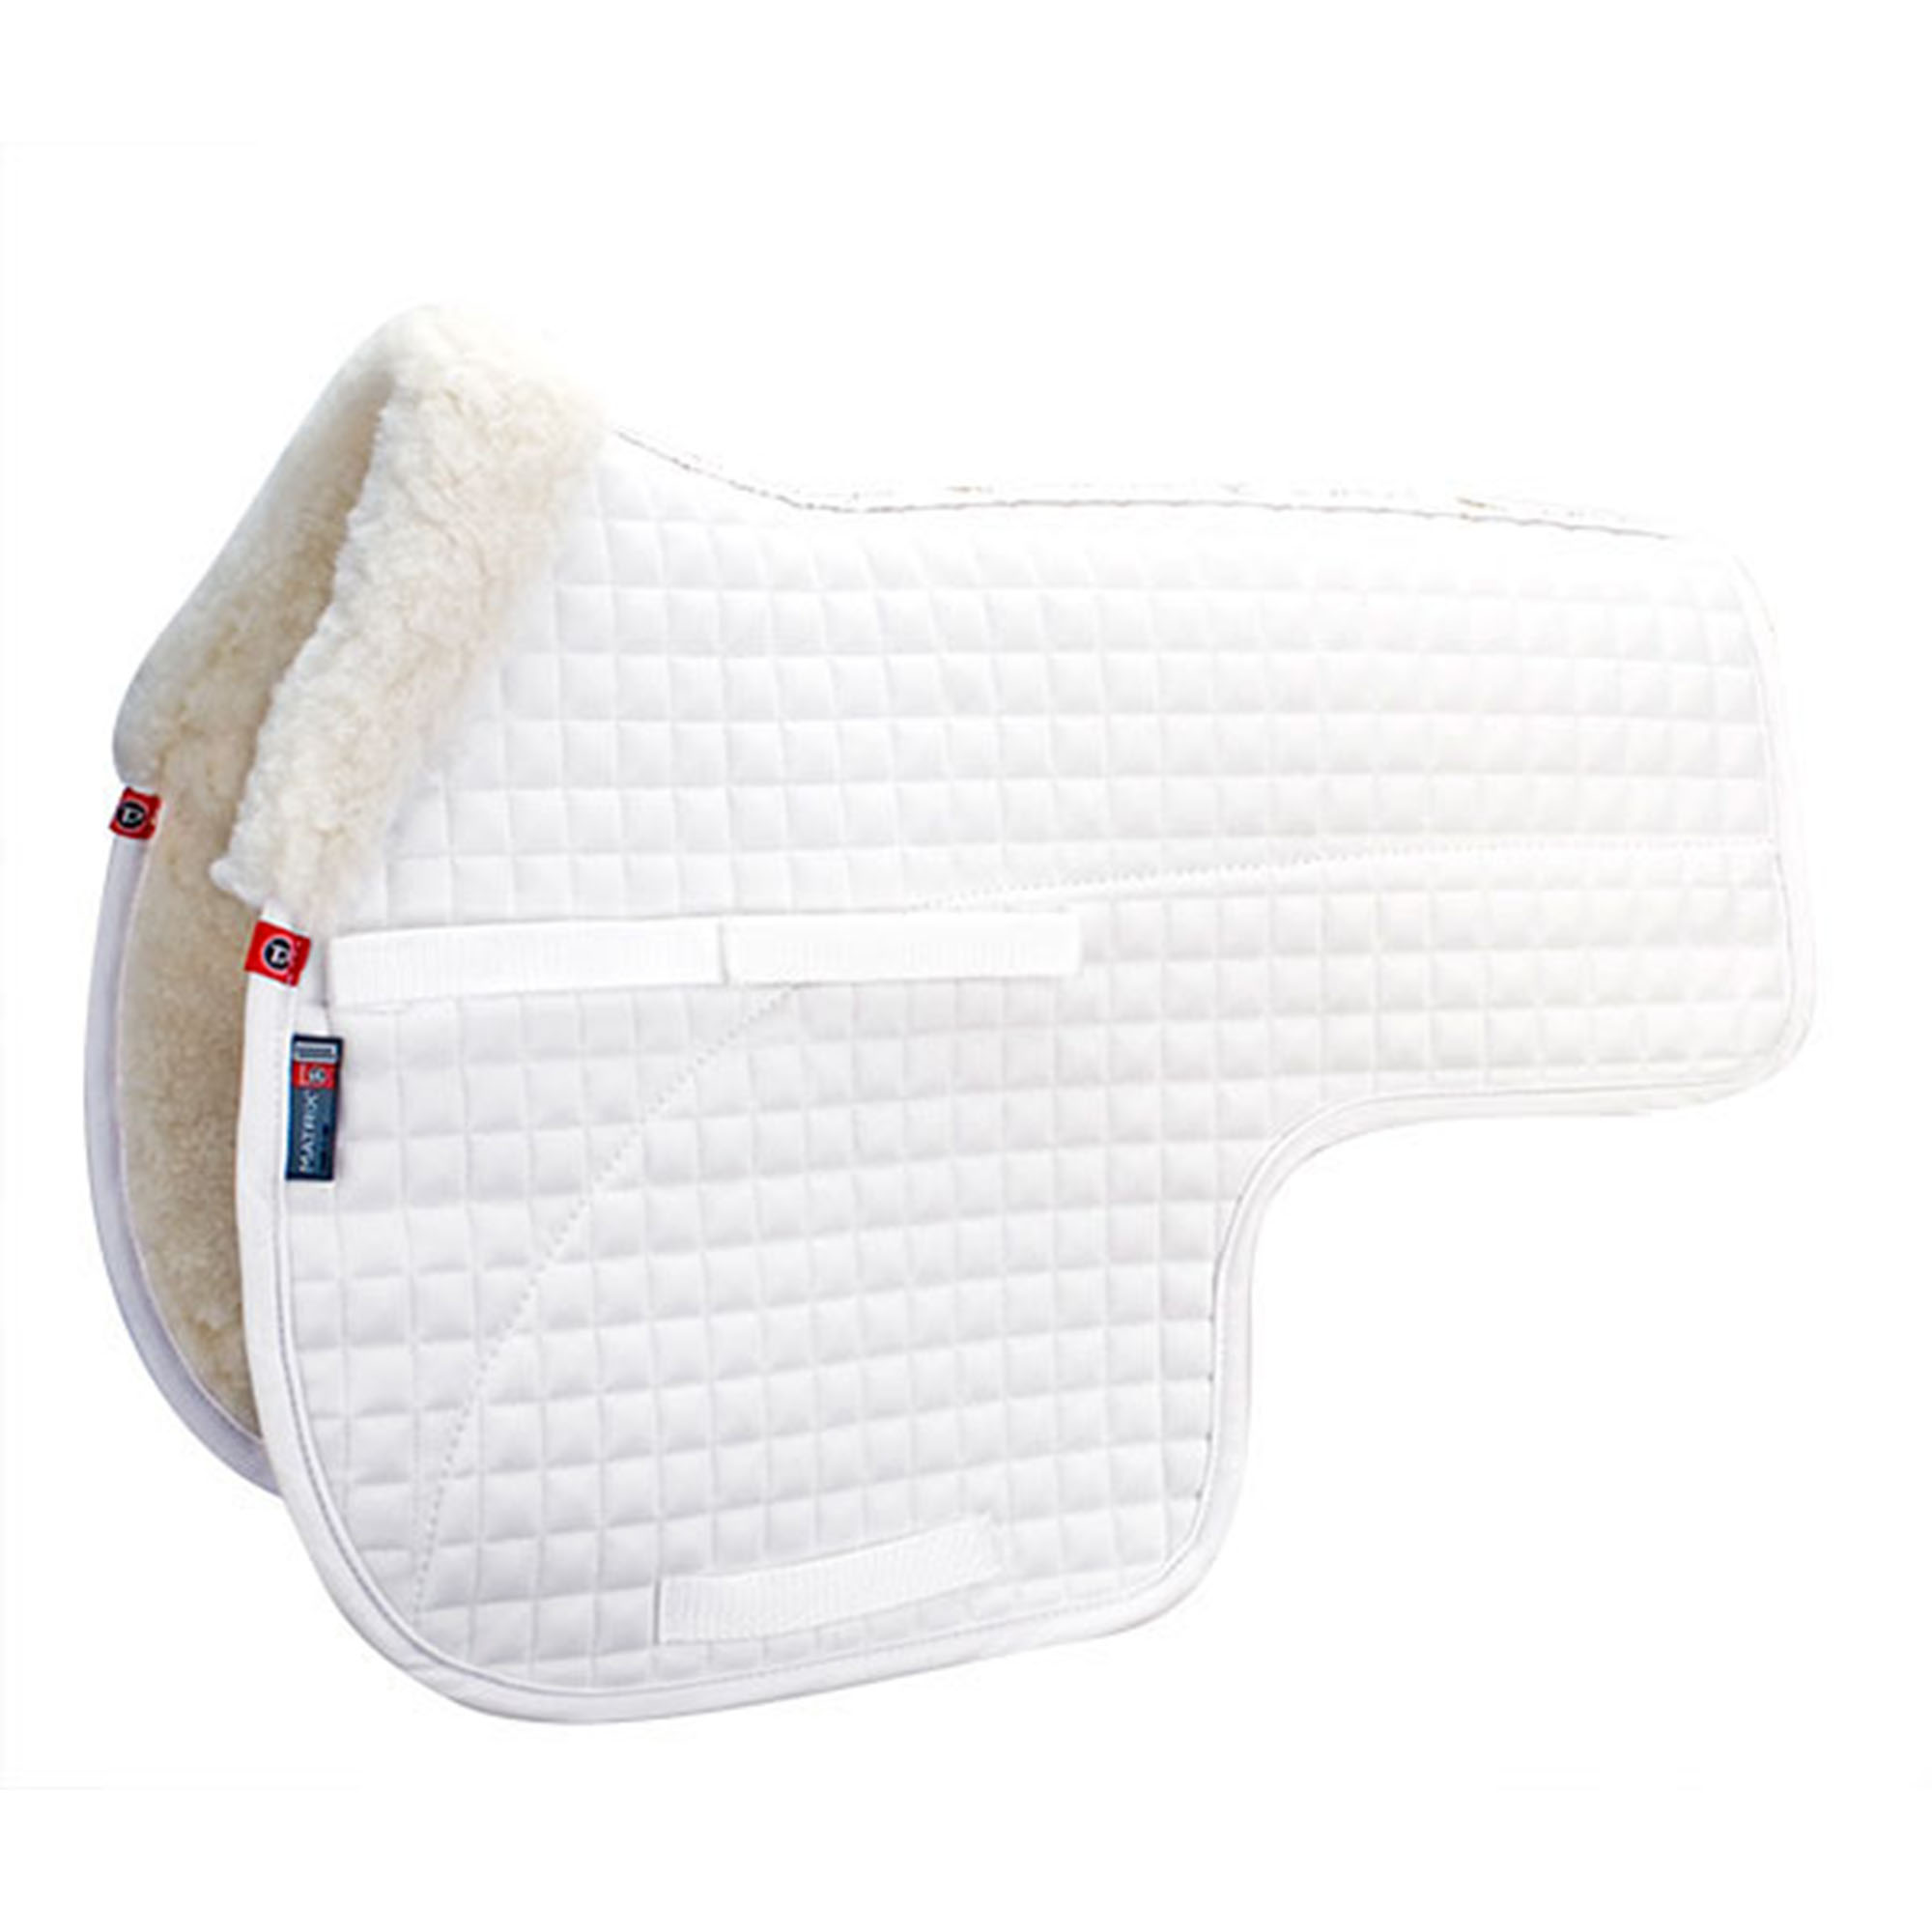 T3 Matrix Sheepskin Competition Pad